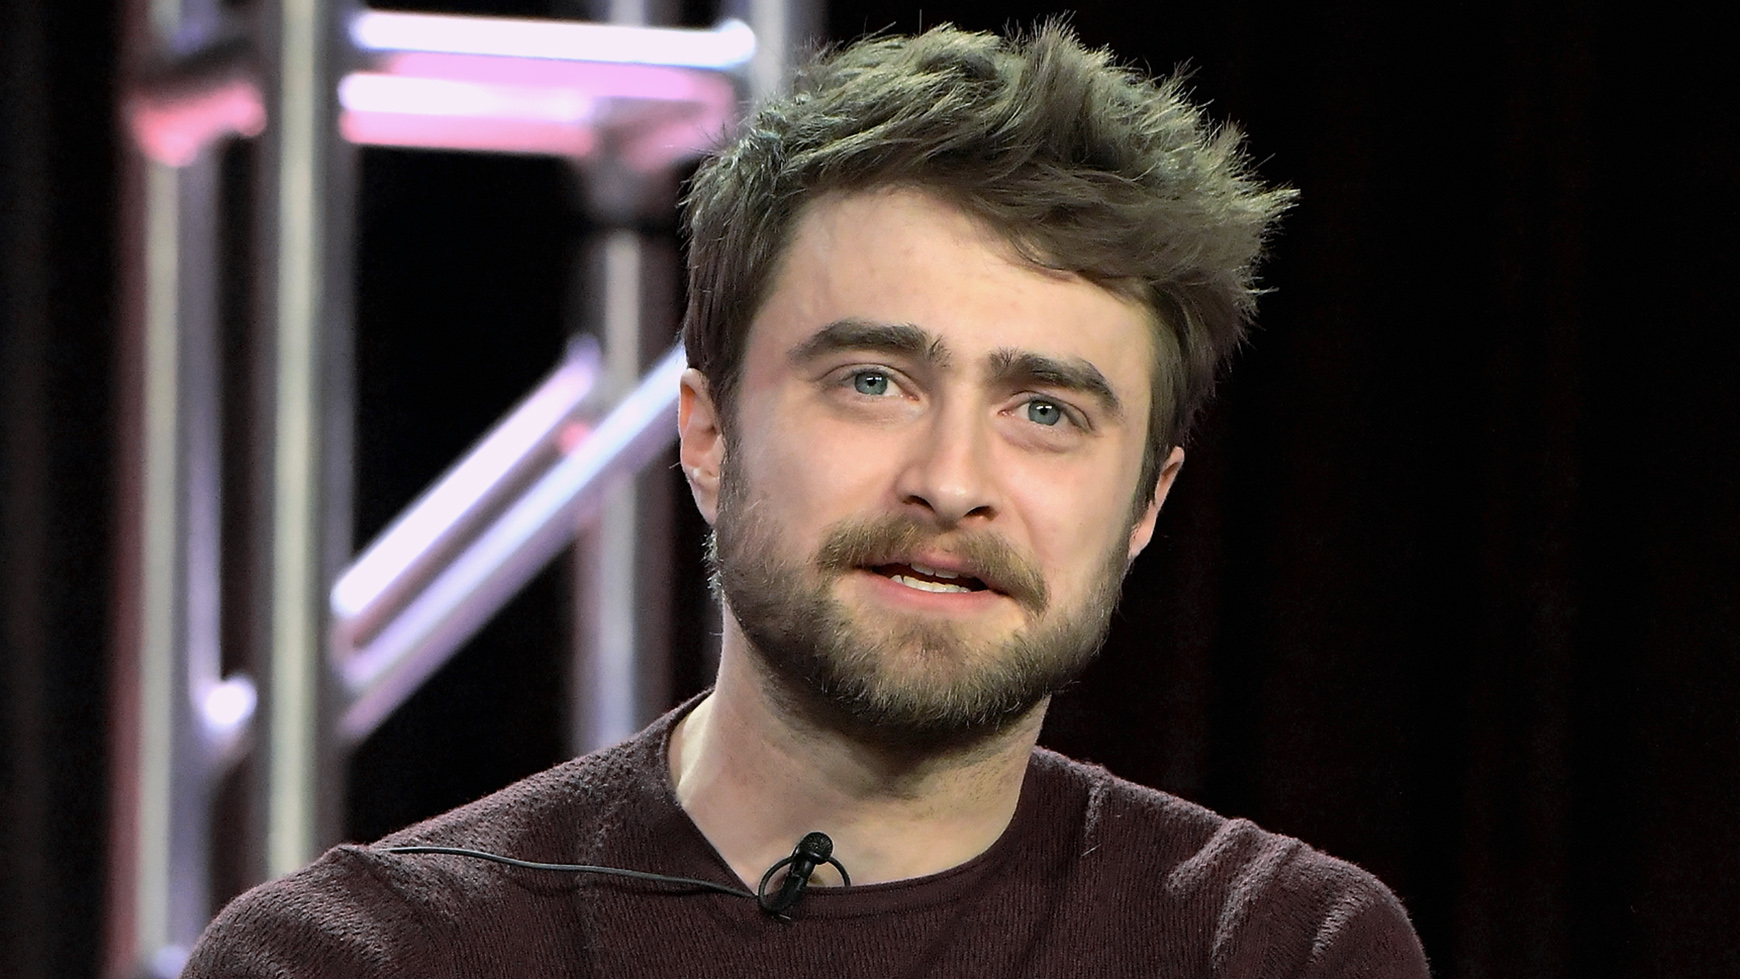 Daniel Radcliffe Fun Facts and Other Stories to Inspire You | Understood -  For learning and thinking differences